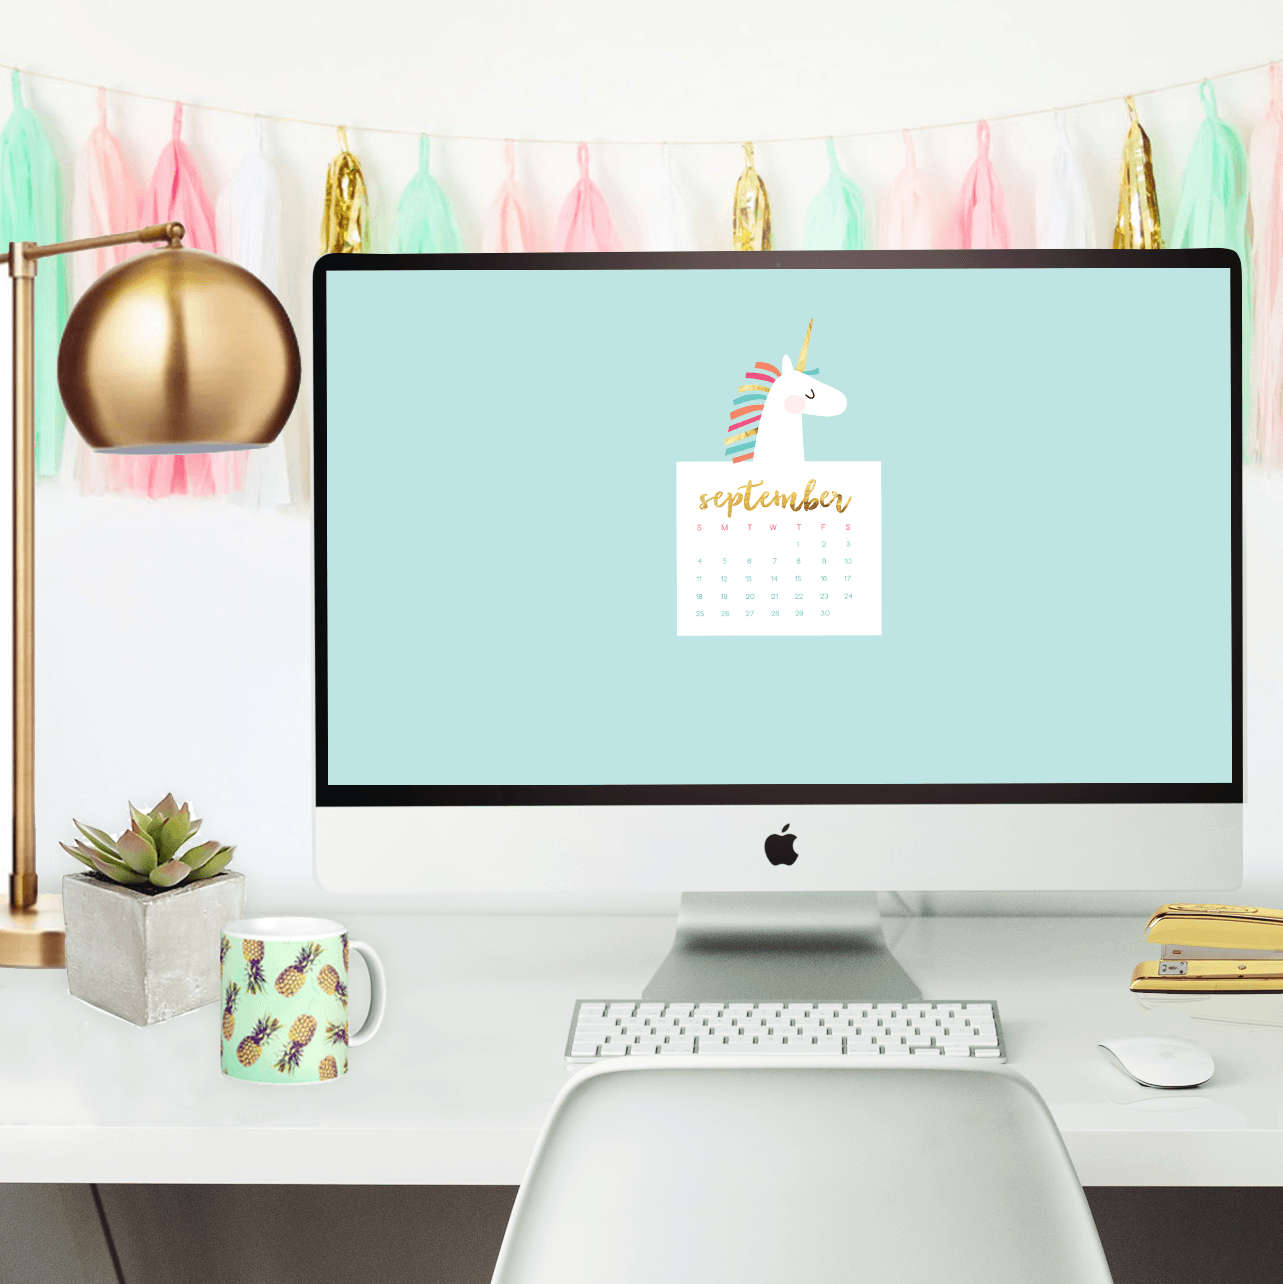 Oh So Lovely Blog shares four free September Desktop Wallpaper Calendars in two themes: unicorn or pant swoosh. Download your favorite today!